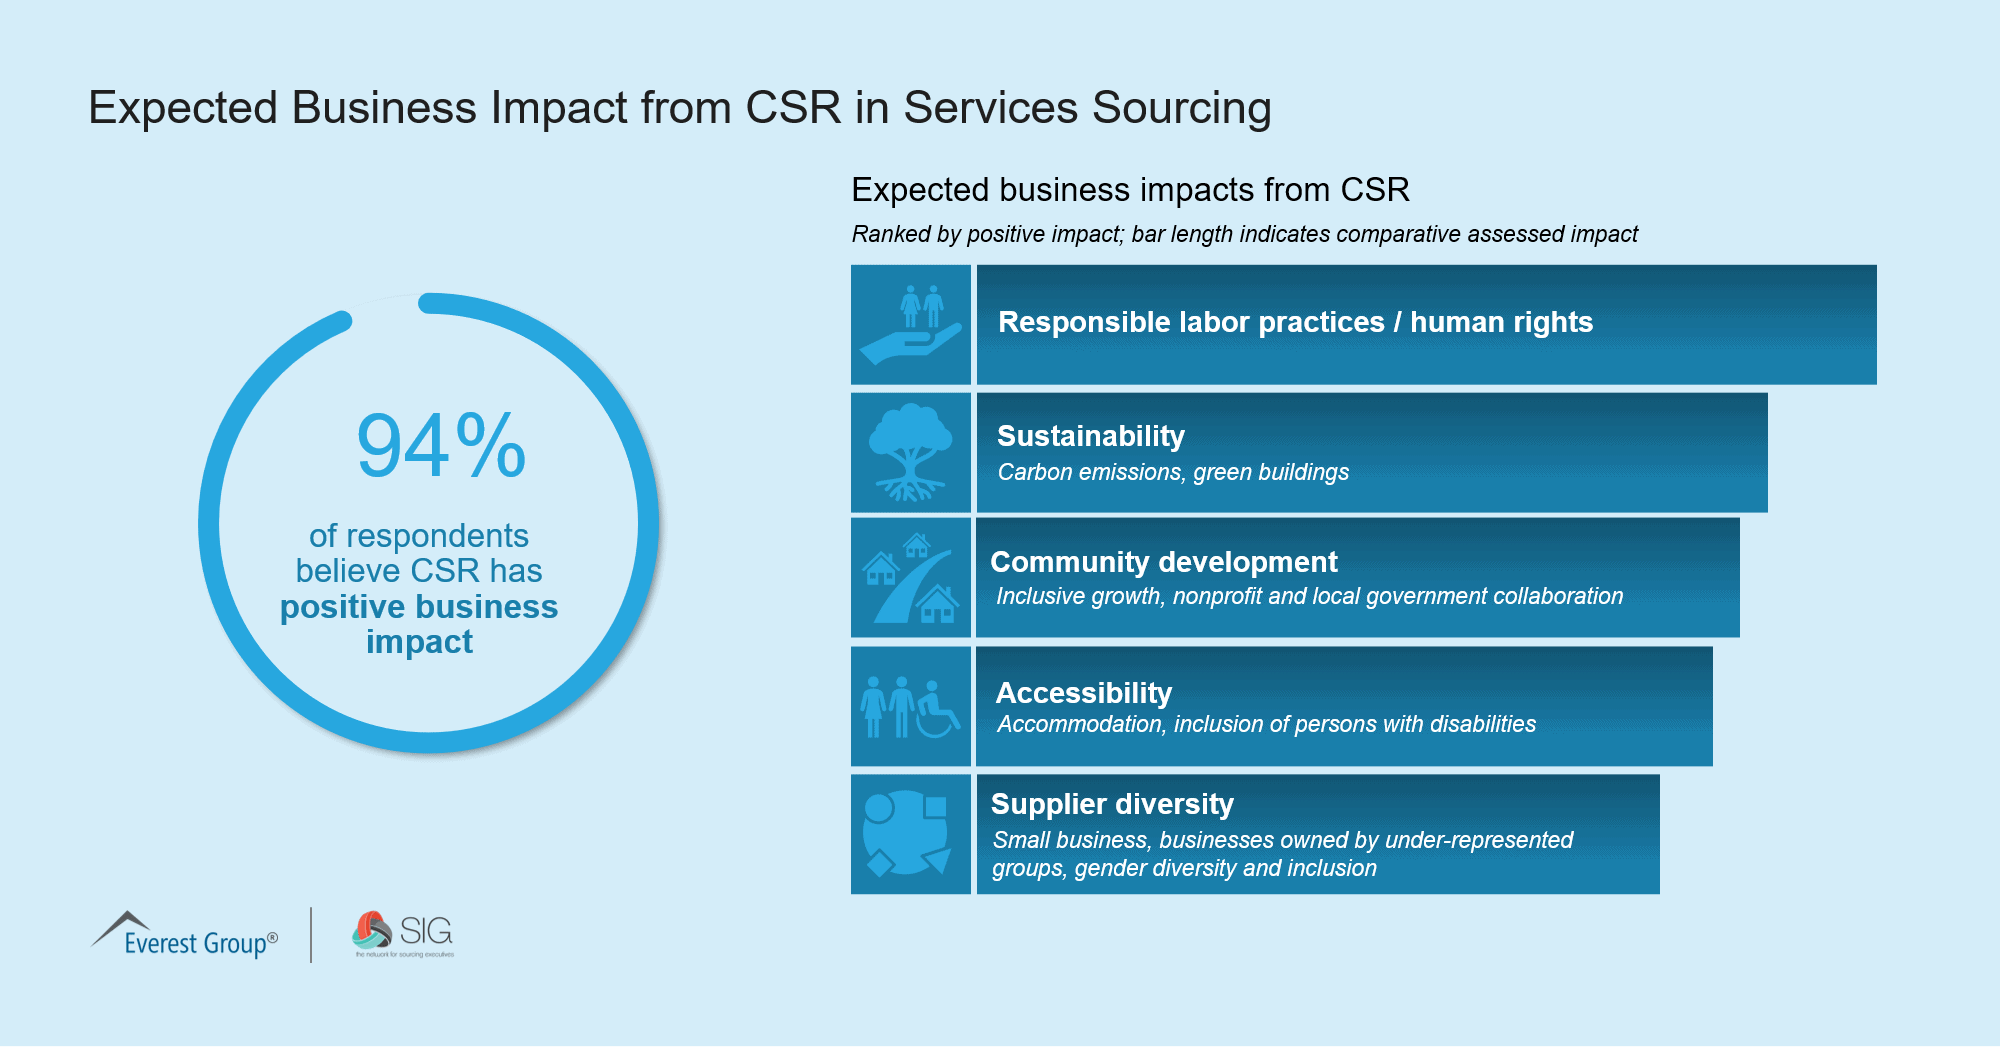 Q3 Expected Business Impact from CSR in Services Sourcing